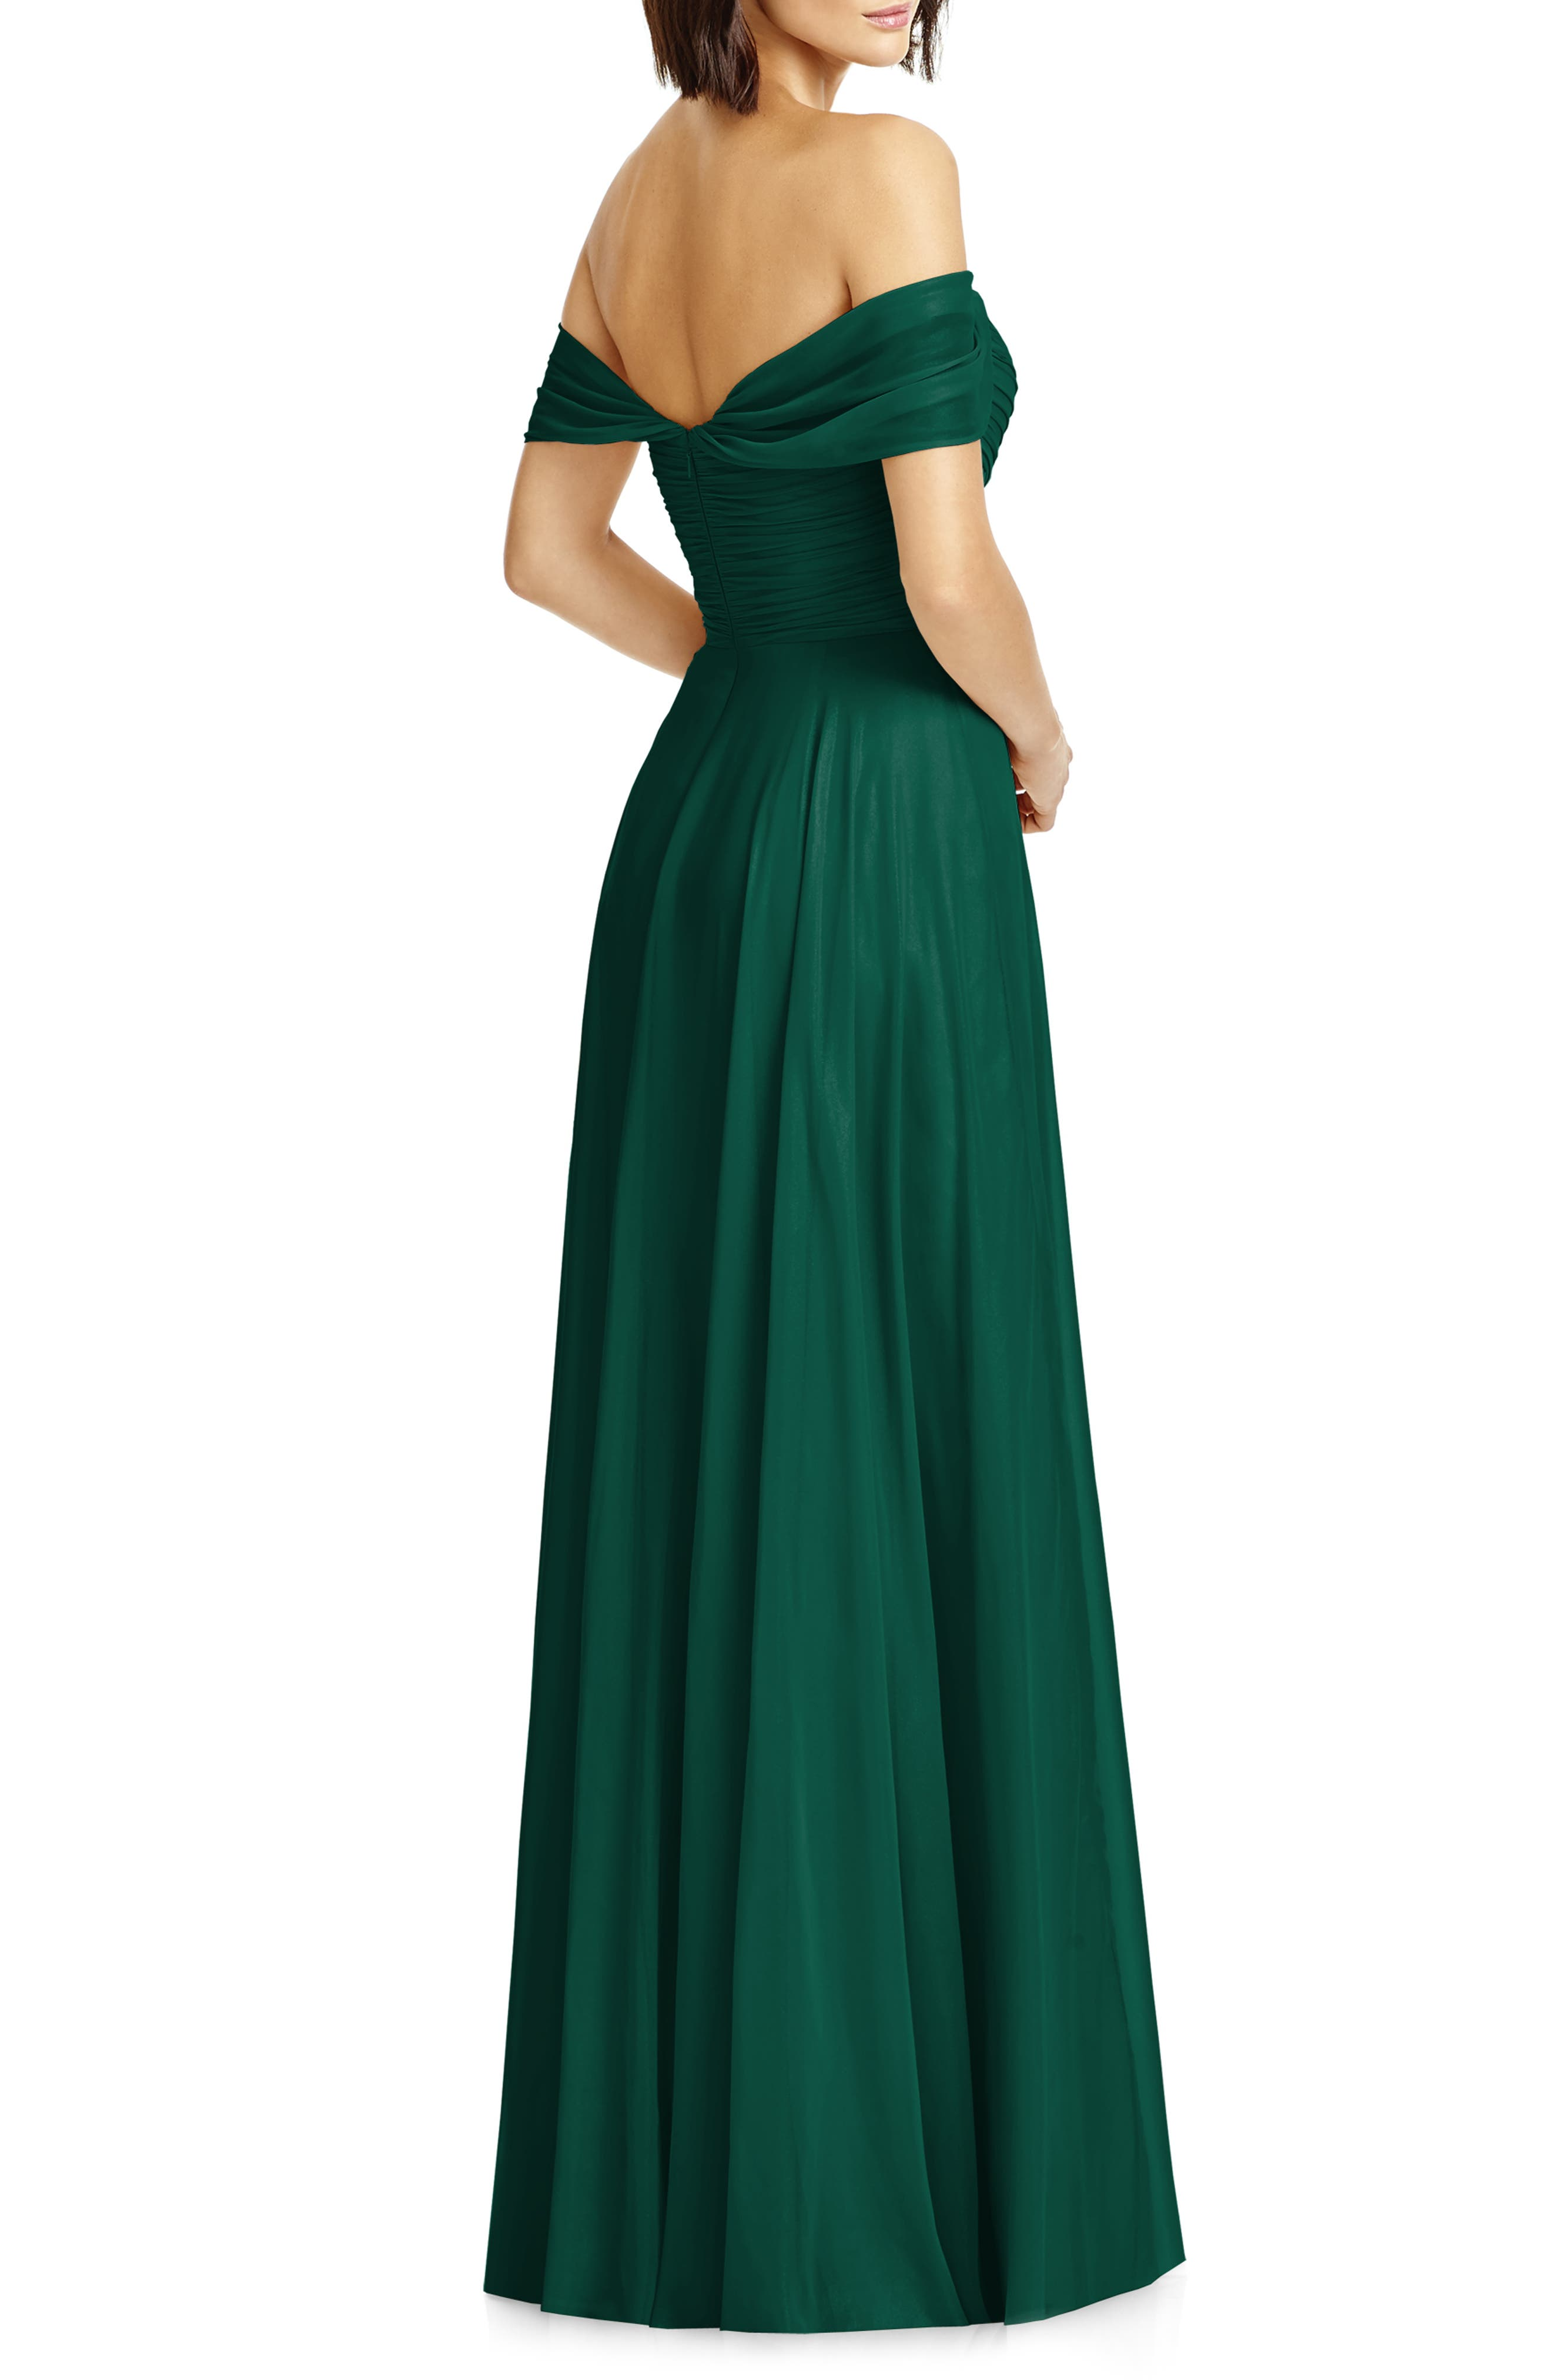 DESSY COLLECTION, Lux Ruched Off the Shoulder Chiffon Gown, Alternate thumbnail 2, color, HUNTER